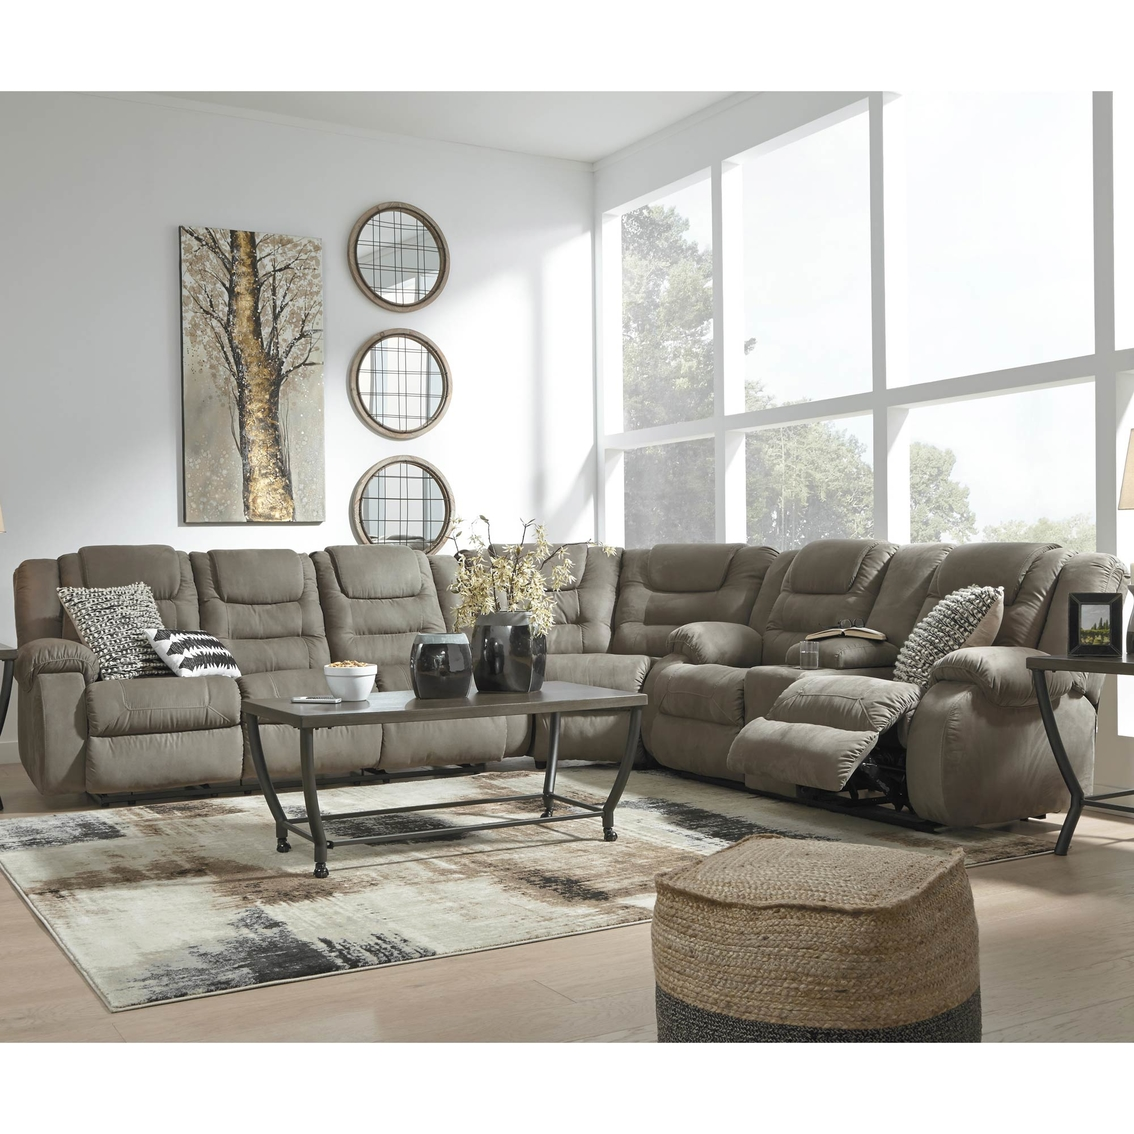 Signature Design By Ashley Mccade 3 Pc. Reclining Sectional ...